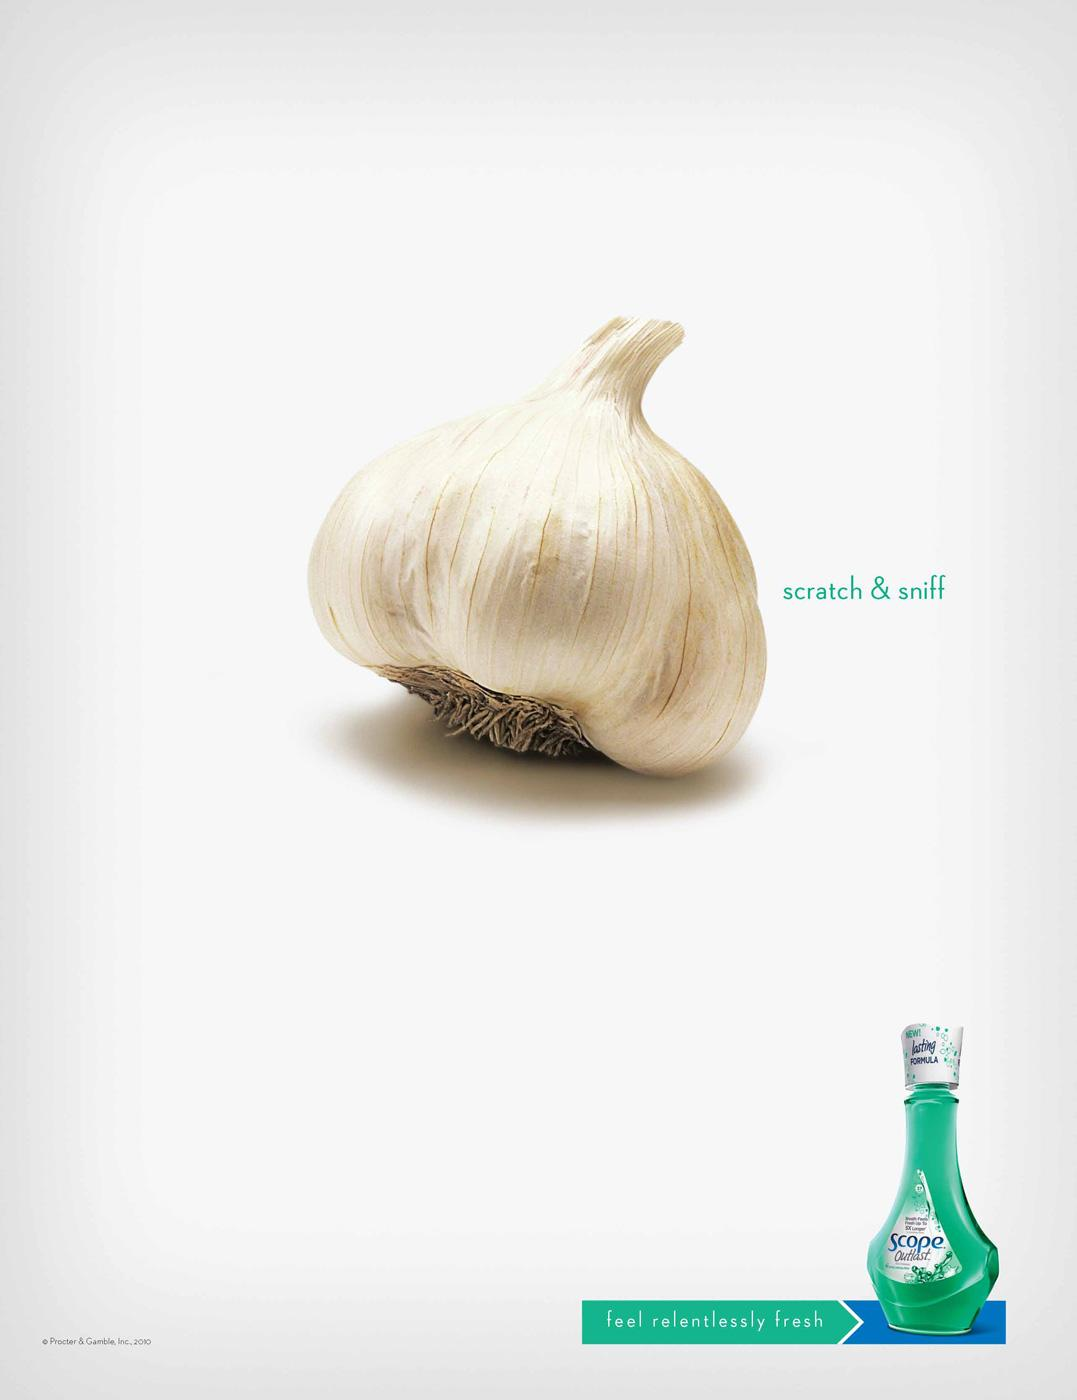 Scope Print Ad -  Relentlessly Fresh Garlic